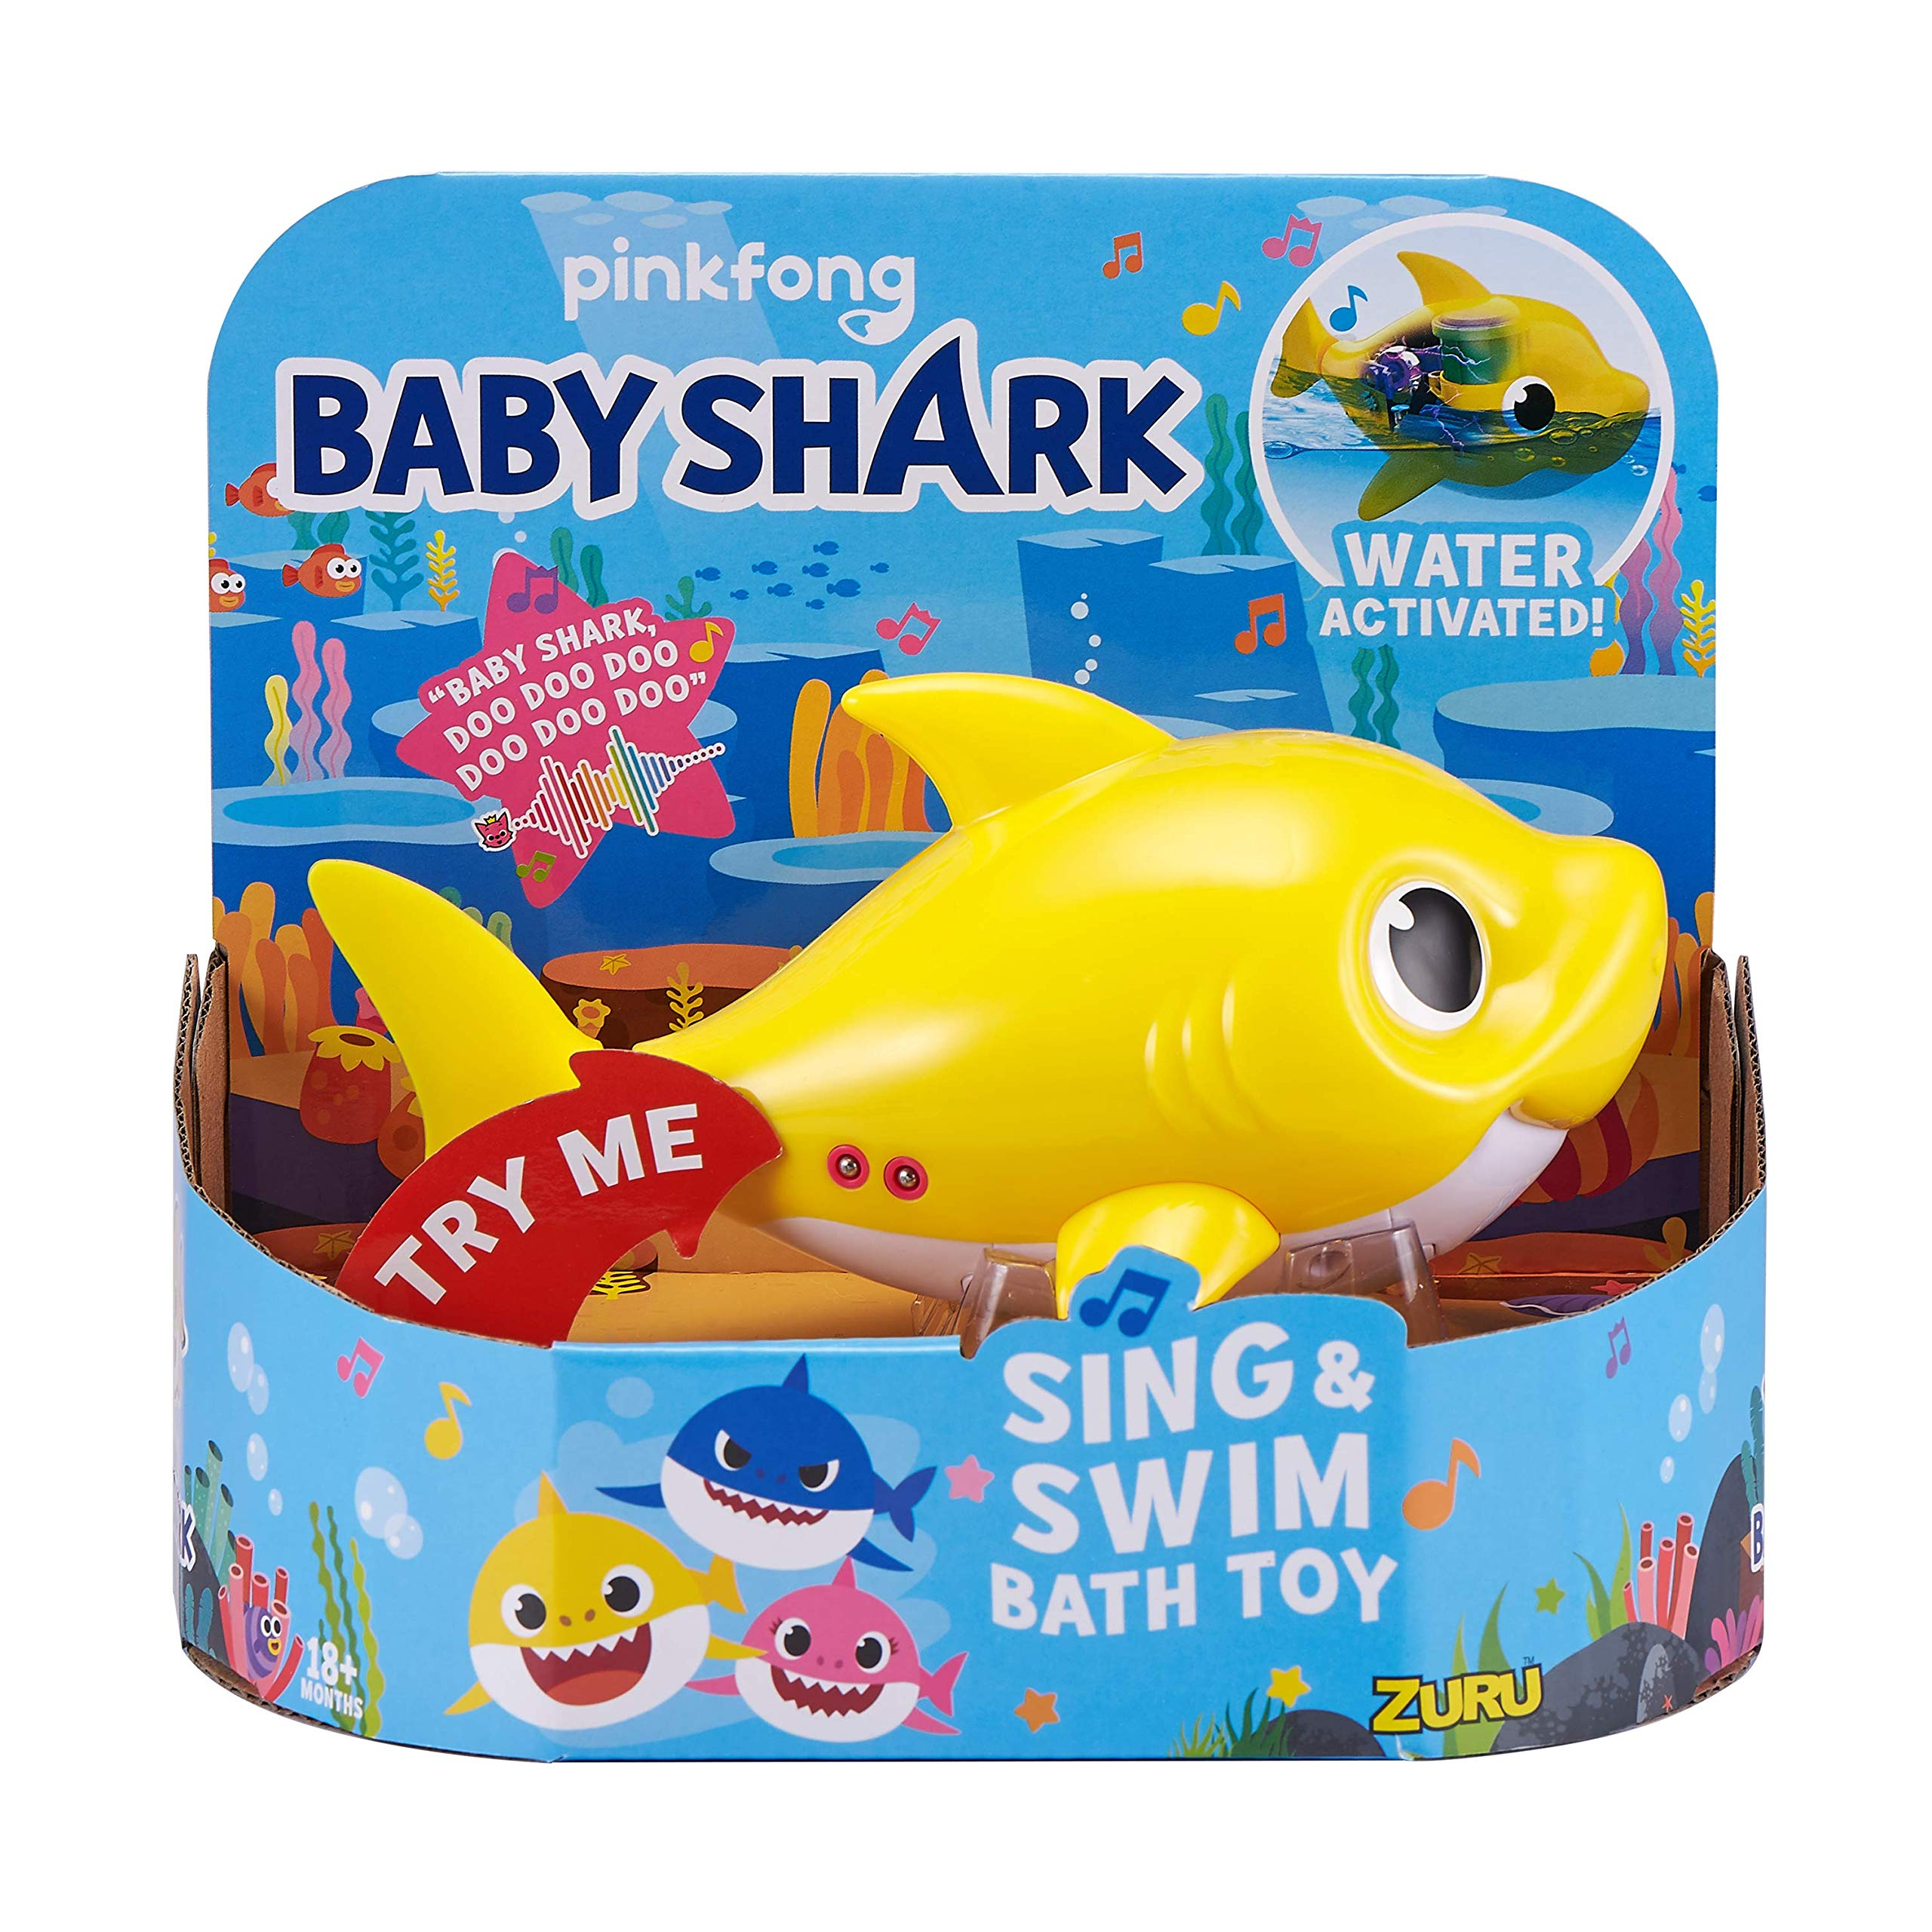 Robo Alive Junior Baby Shark Battery-Powered Sing and Swim Bath Toy by ZURU - Baby Shark (Yellow) by Robo Alive Junior (Image #1)